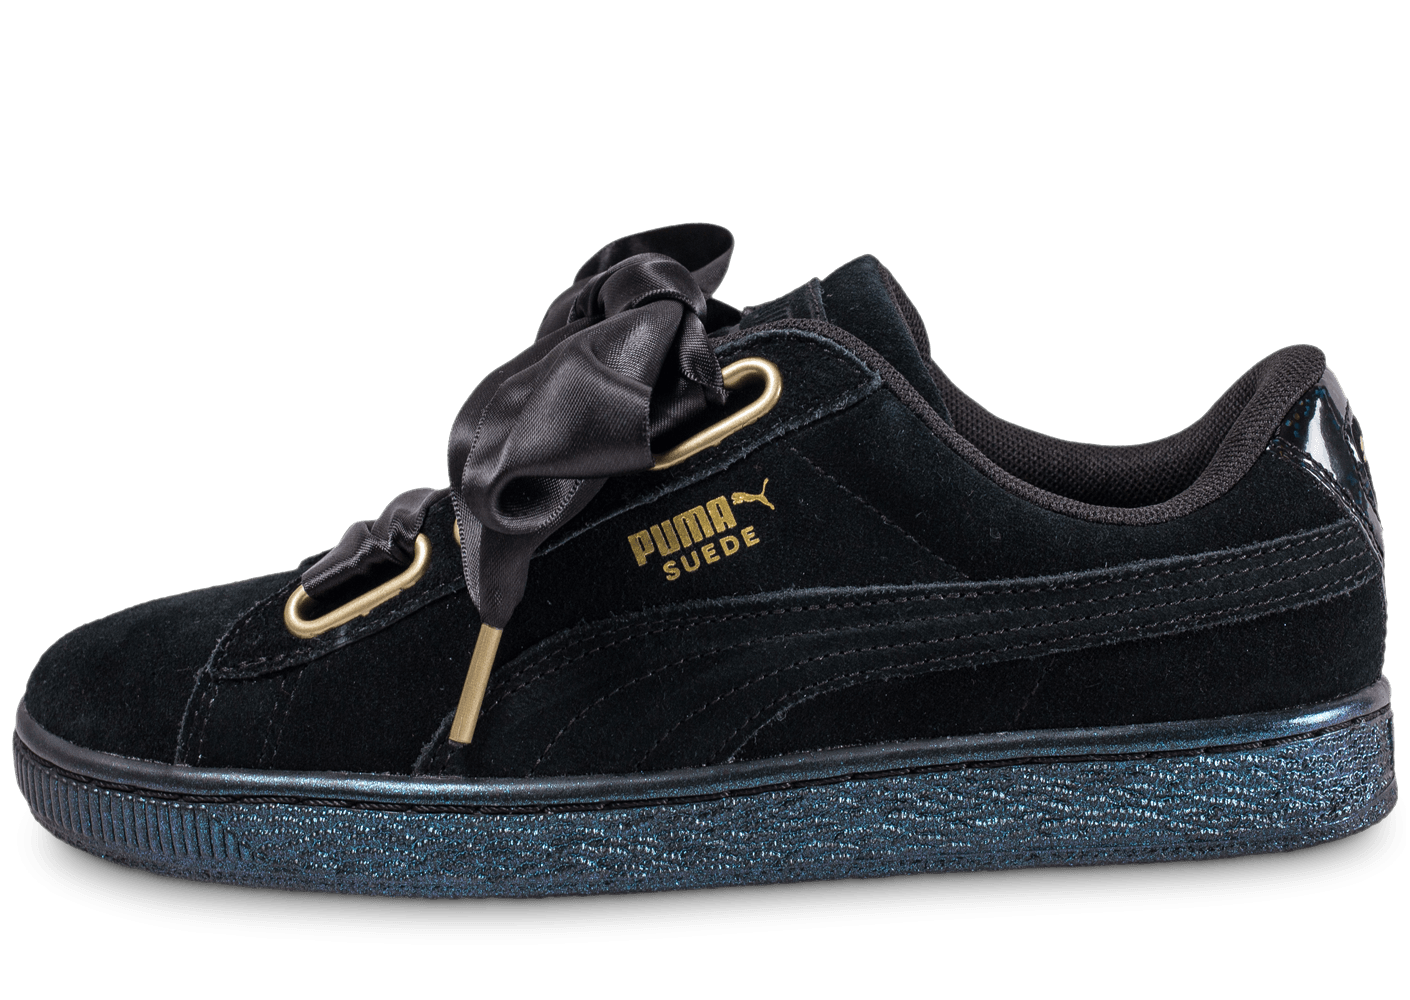 puma suede heart satin noire chaussures black friday chausport. Black Bedroom Furniture Sets. Home Design Ideas